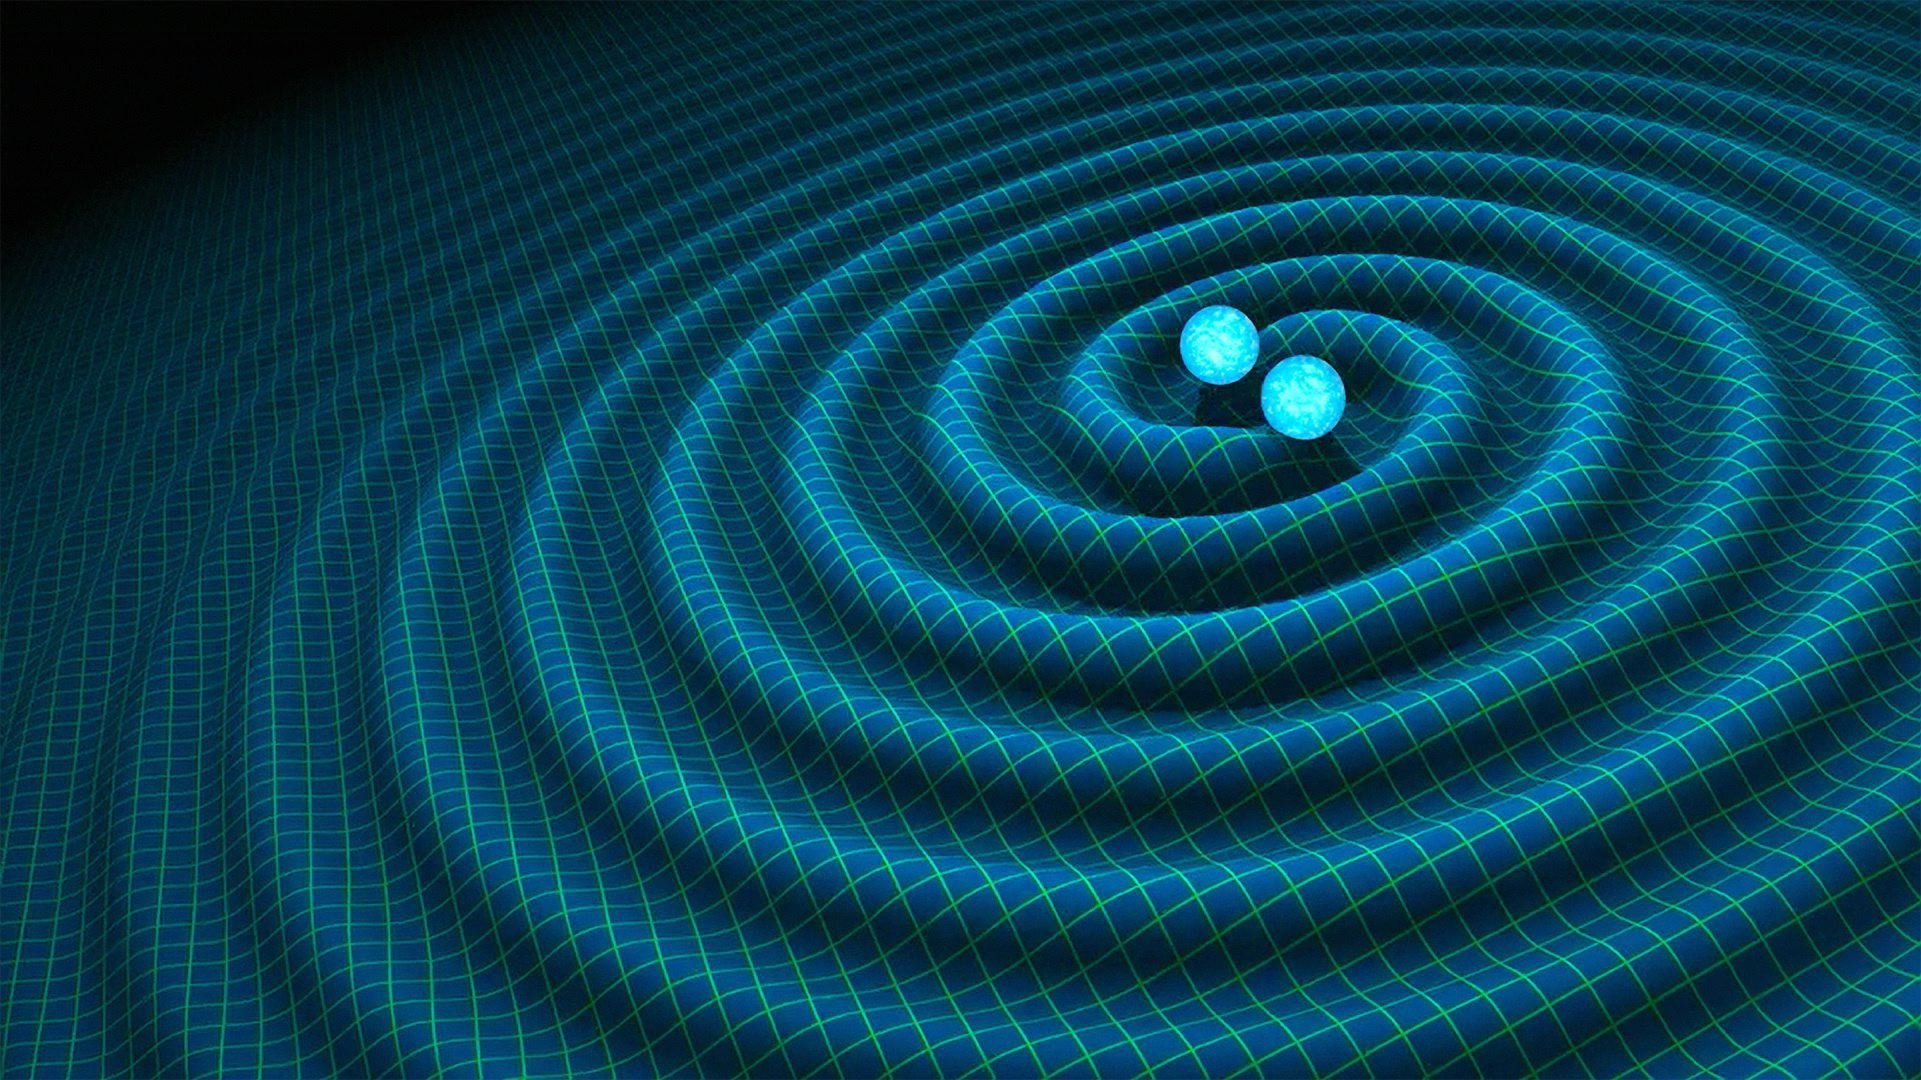 An artist's impression of gravitational waves generated by binary neutron stars. US researchers said on Feb. 11 2016 they have detected gravitational waves, which physicist Albert Einstein first described 100 years ago as 'ripples in the fabric of space-time.'